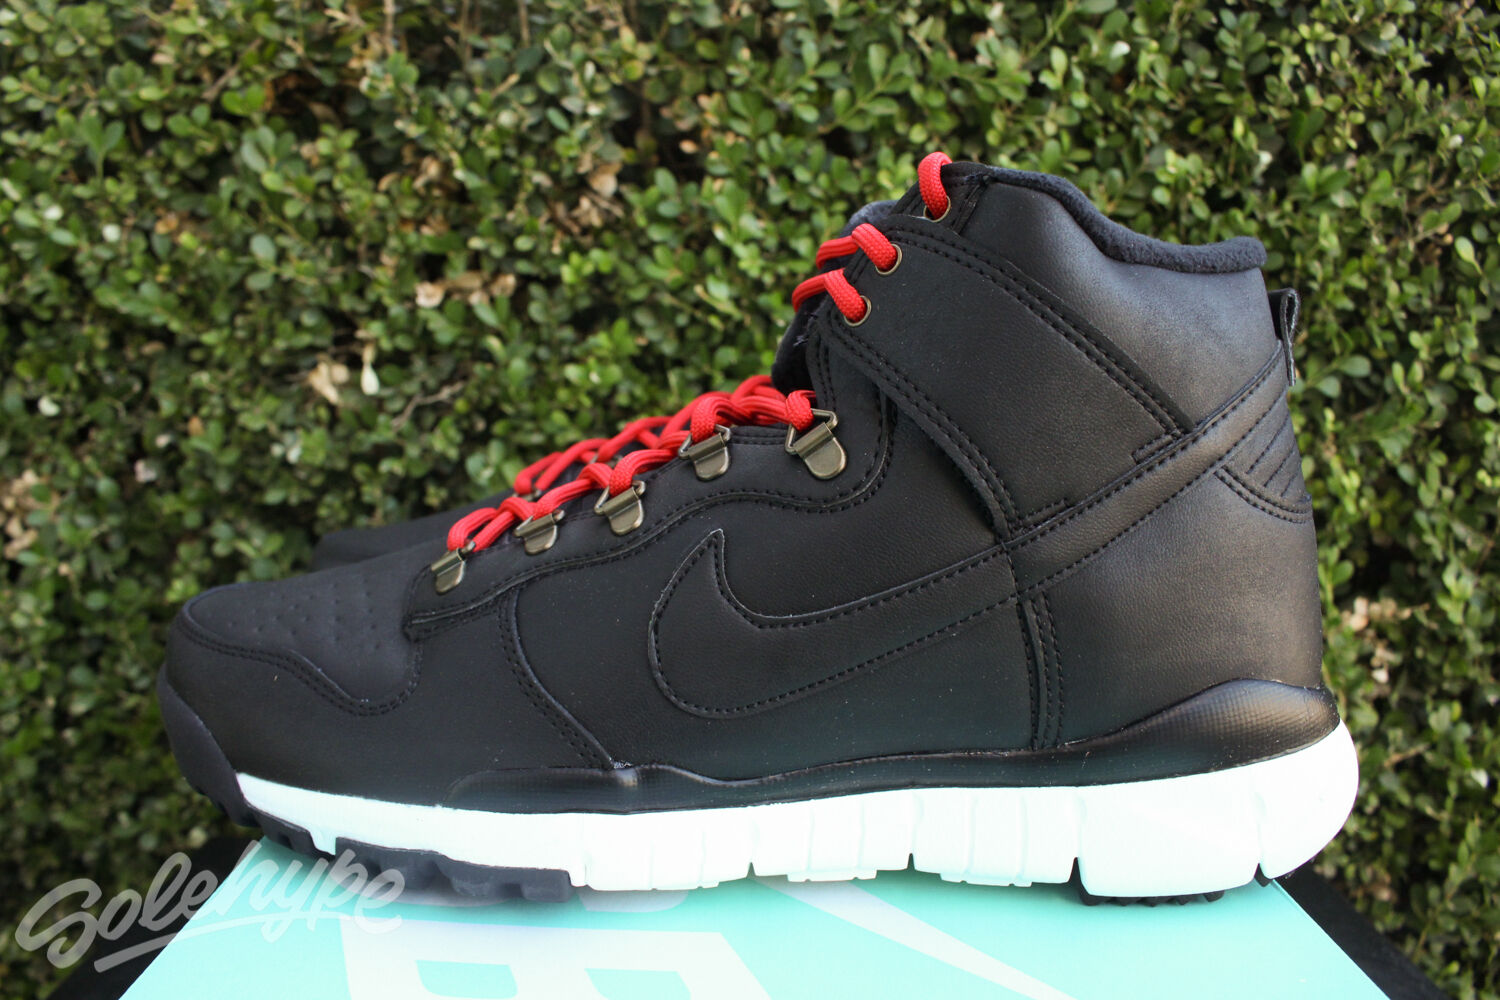 NIKE SB DUNK HIGH BOOT OMS SZ 8 BLACK ALE BROWN ON MOUNTAIN SERIES 806335 012